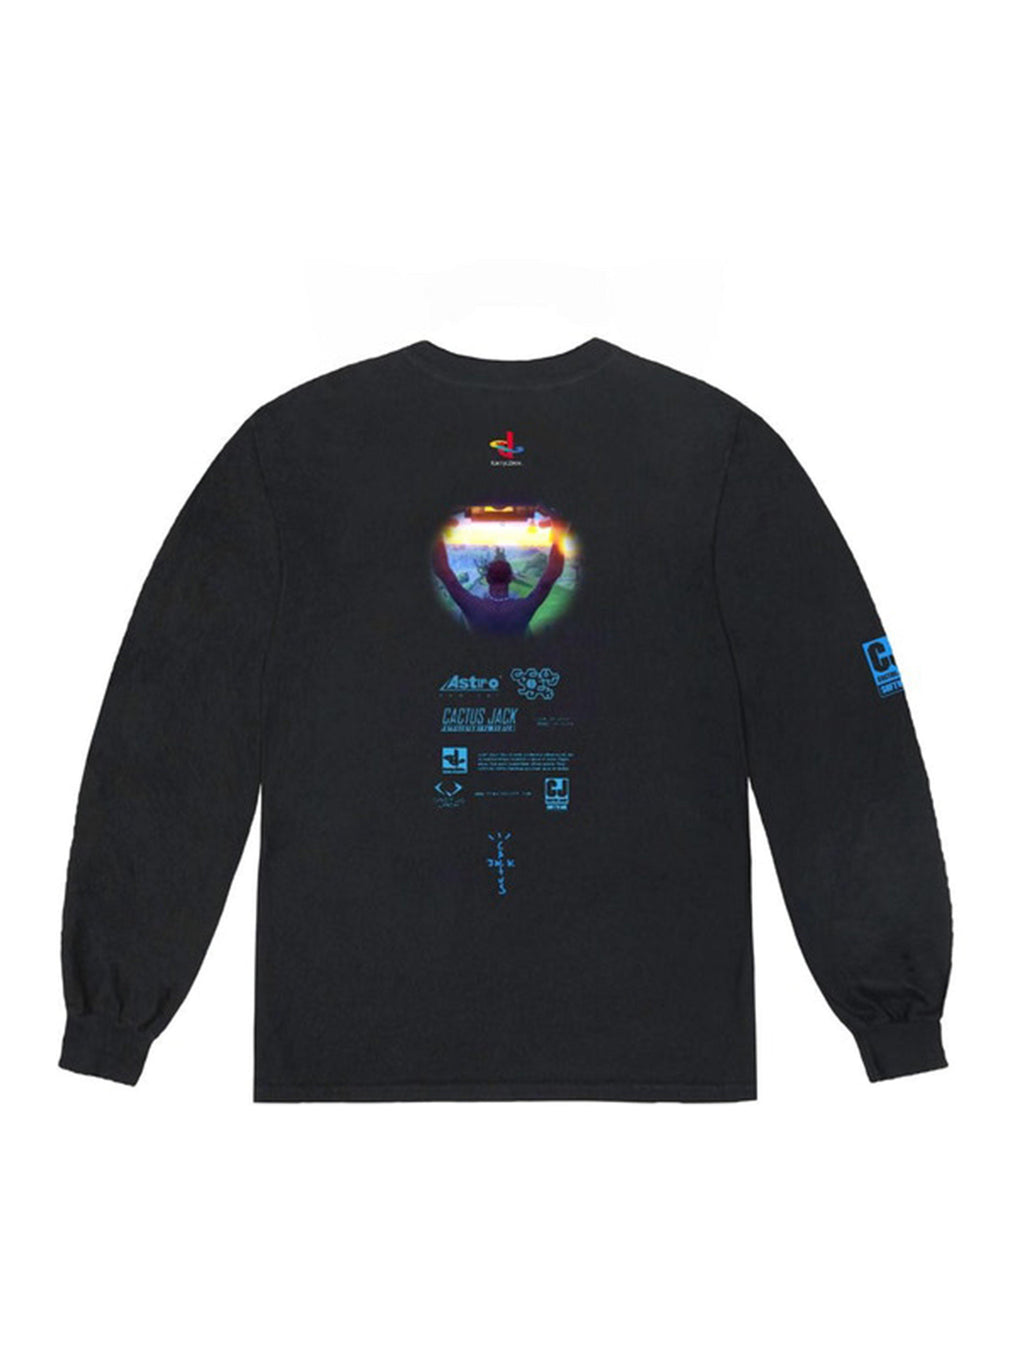 Travis Scott The Scotts Cj Portal L/S Tee Black - PRIOR